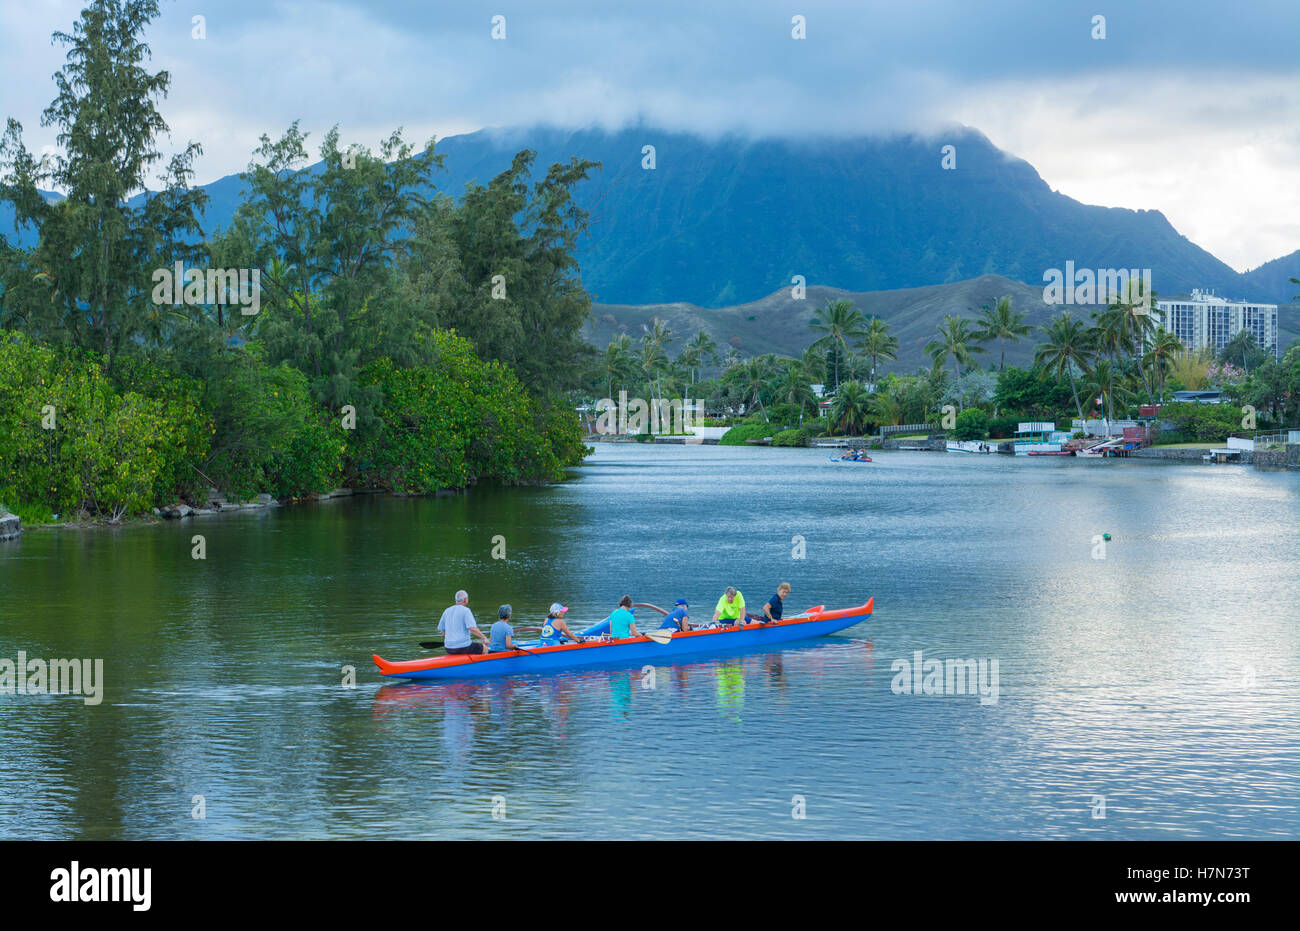 Kailua Hawaii Oahu canoe club rowing on Outrigger Canoes in bay practice sports athletics exercise - Stock Image